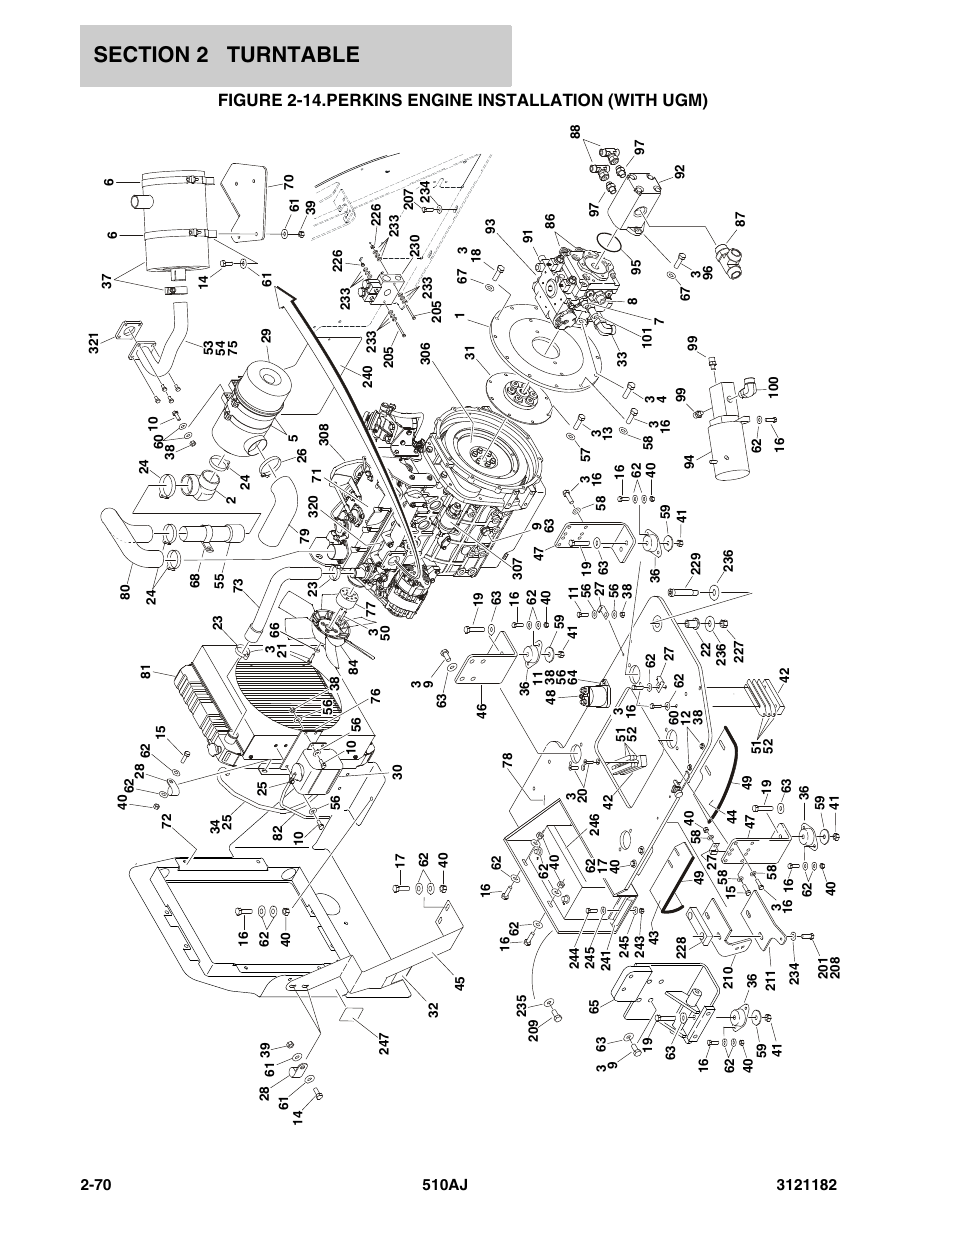 Perkins Engine Parts Diagrams - top electrical wiring diagram on m44 engine diagram, h1 engine diagram, g20 engine diagram, m20 engine diagram, m96 engine diagram, fx45 engine diagram, m54 engine diagram, m104 engine diagram, m52 engine diagram, m10 engine diagram, m50 engine diagram, m45 engine diagram, m62 engine diagram, m60 engine diagram, m42 engine diagram,